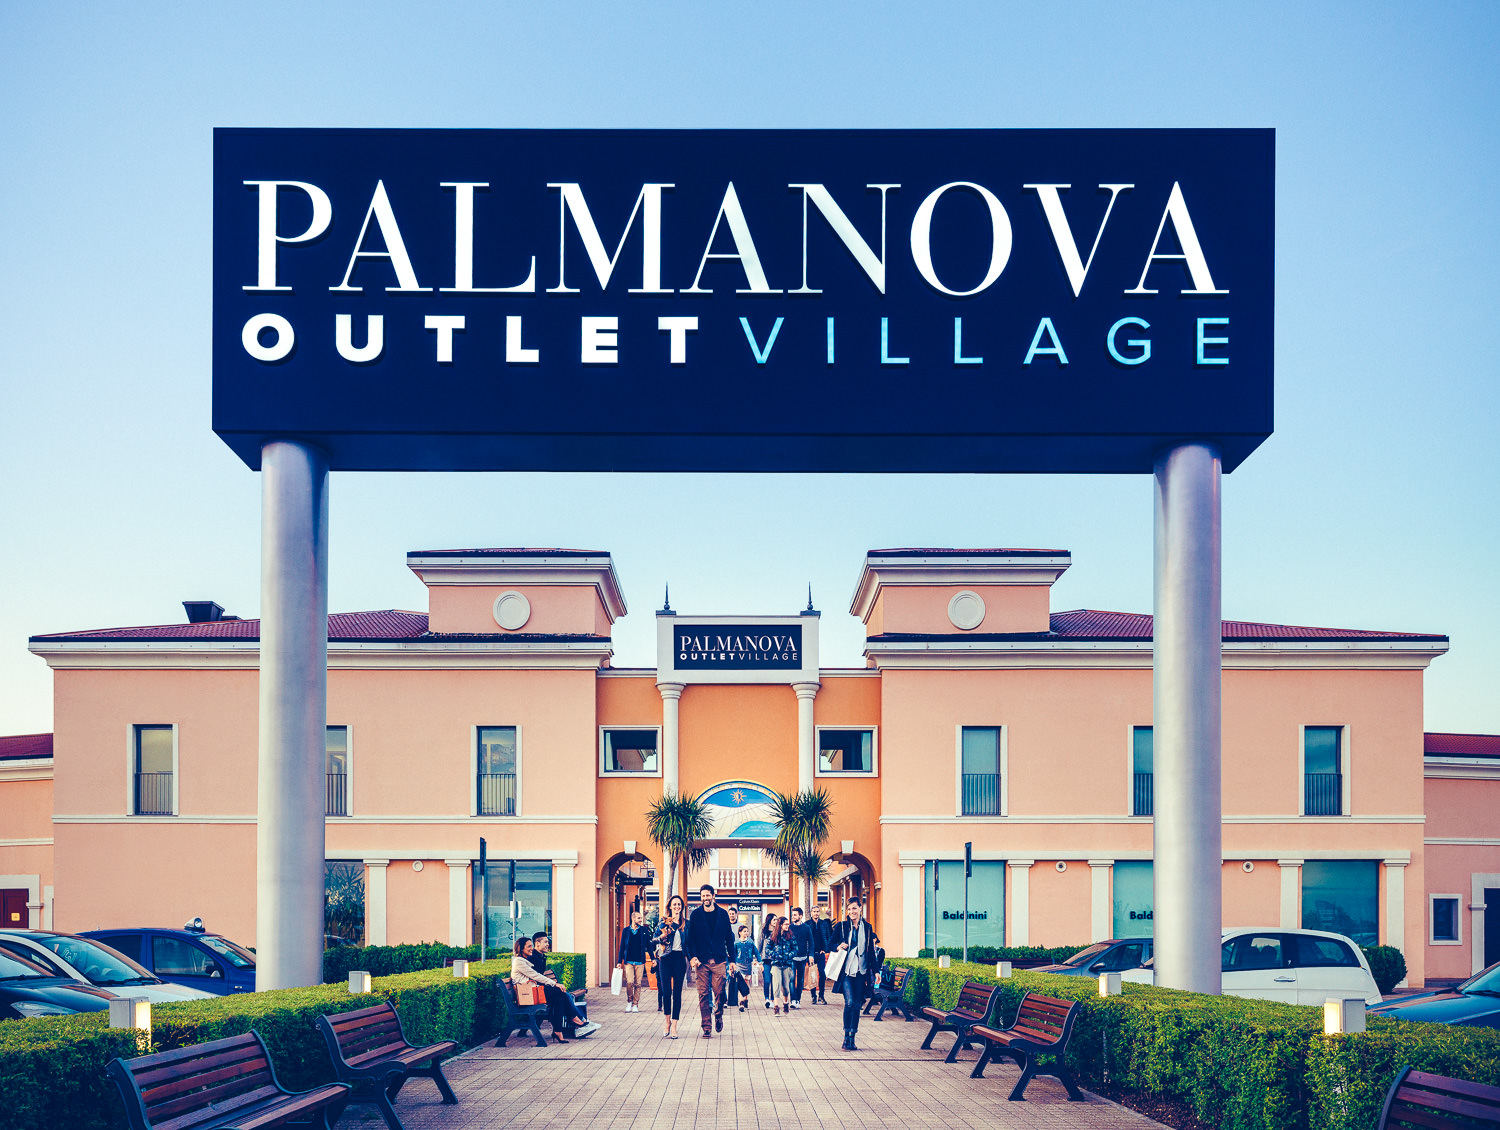 ingresso Palmanova Outlet Village